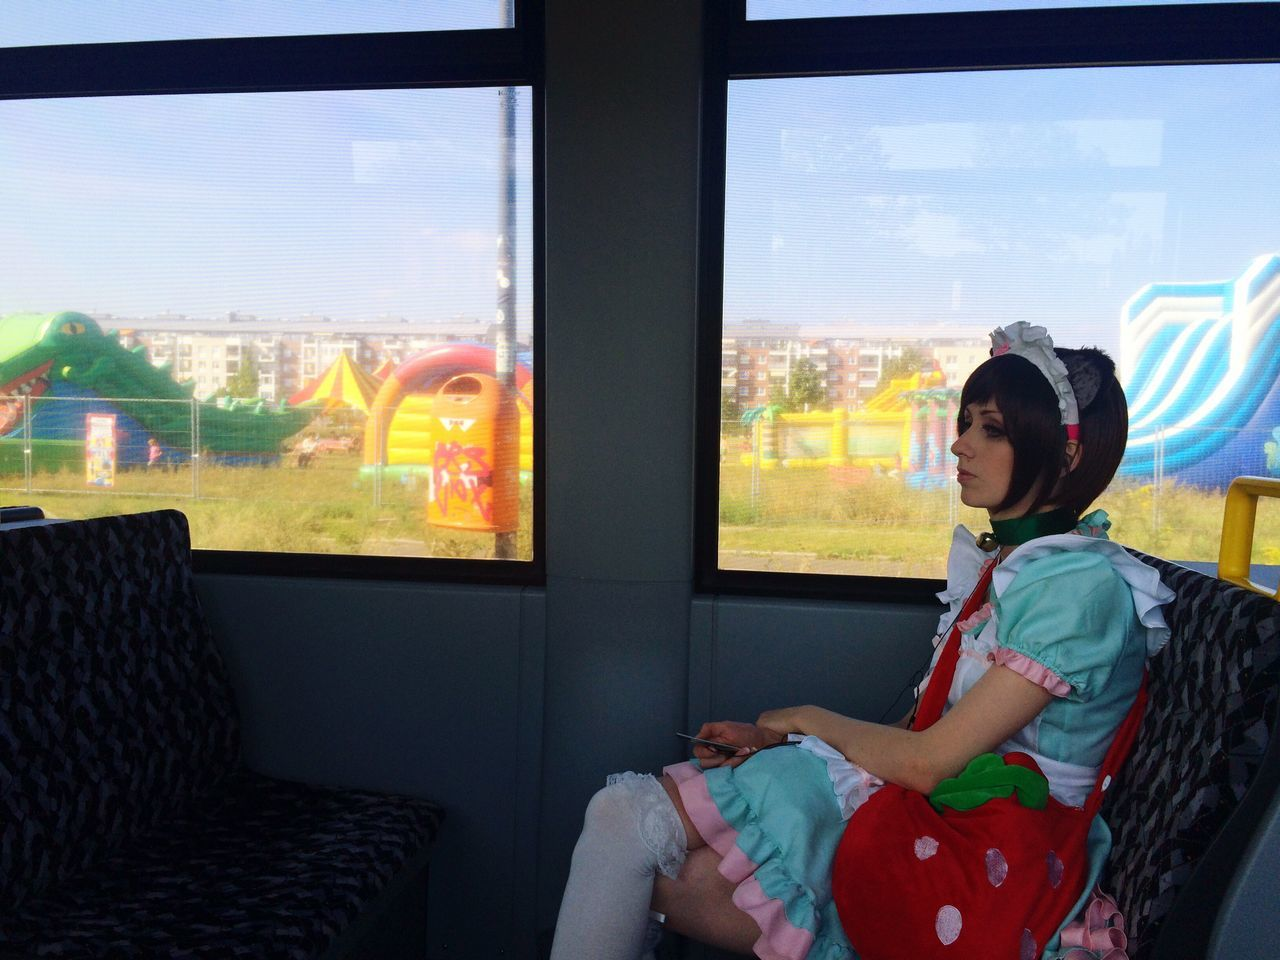 Window Indoors  Glass - Material Transparent Sitting Casual Clothing Home Interior Sky Journey Looking Curiosity Day Person Looking At Camera Manga Berlin Tram Marzahn